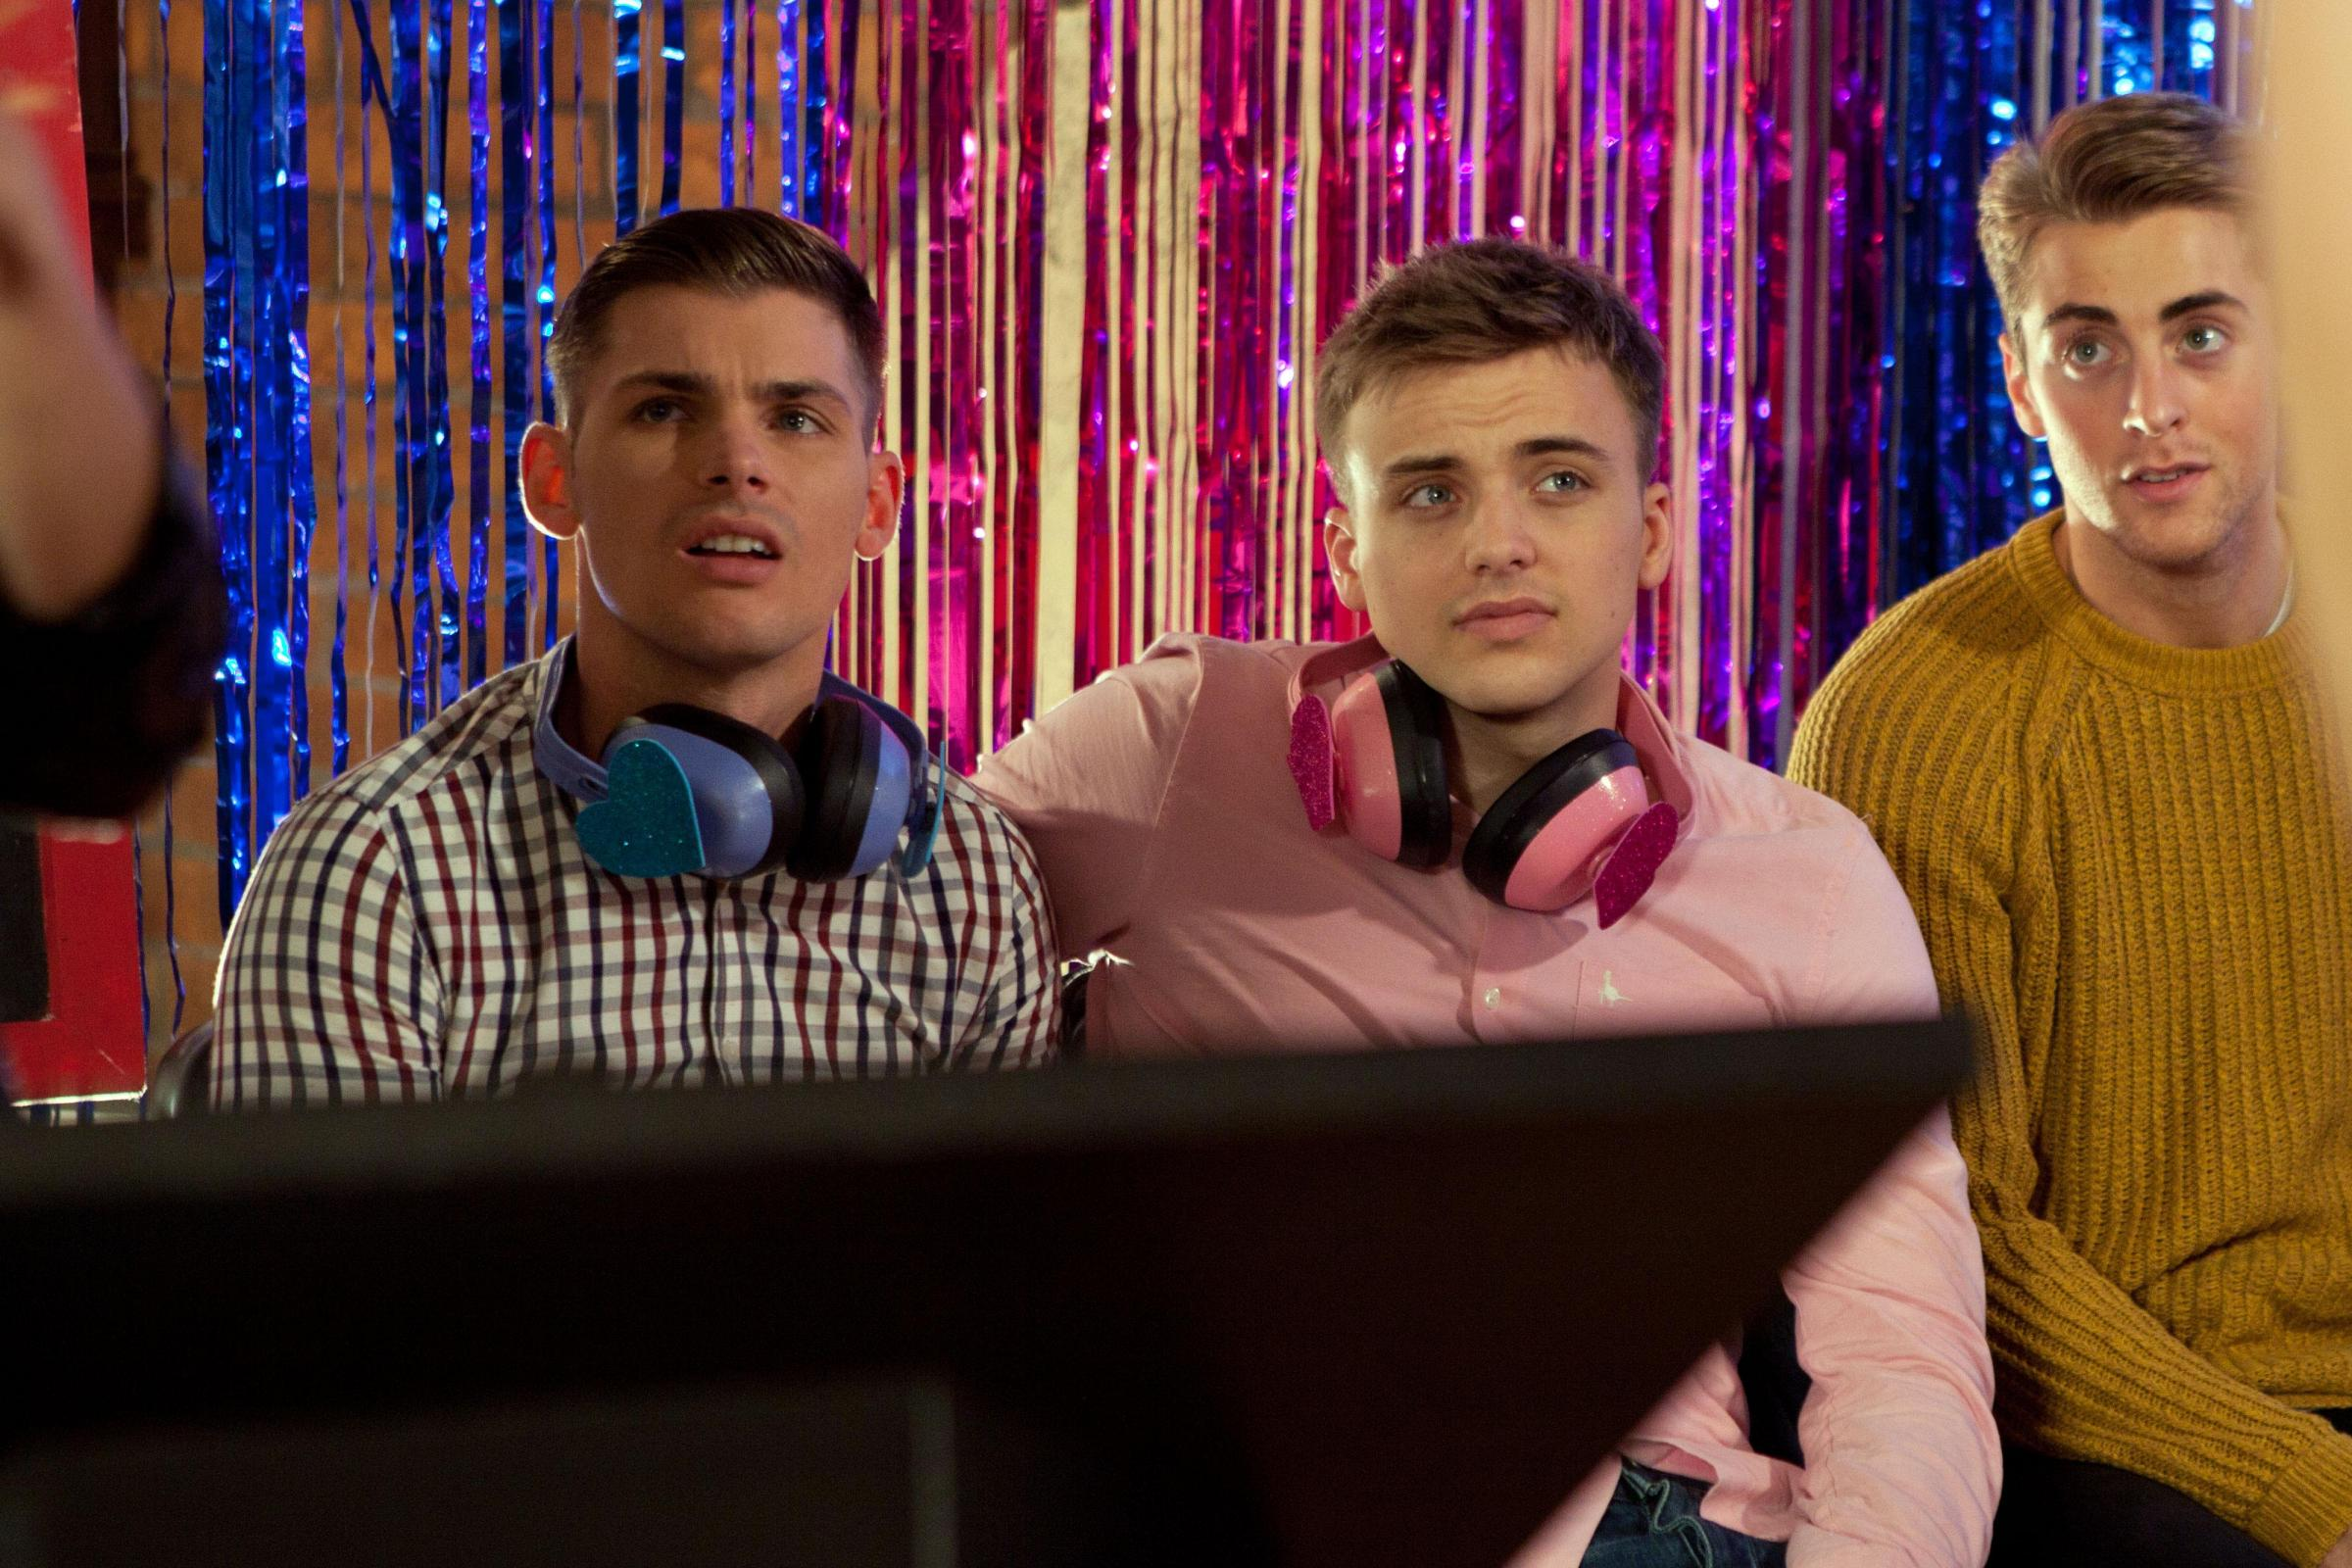 Parry glasspool dating games